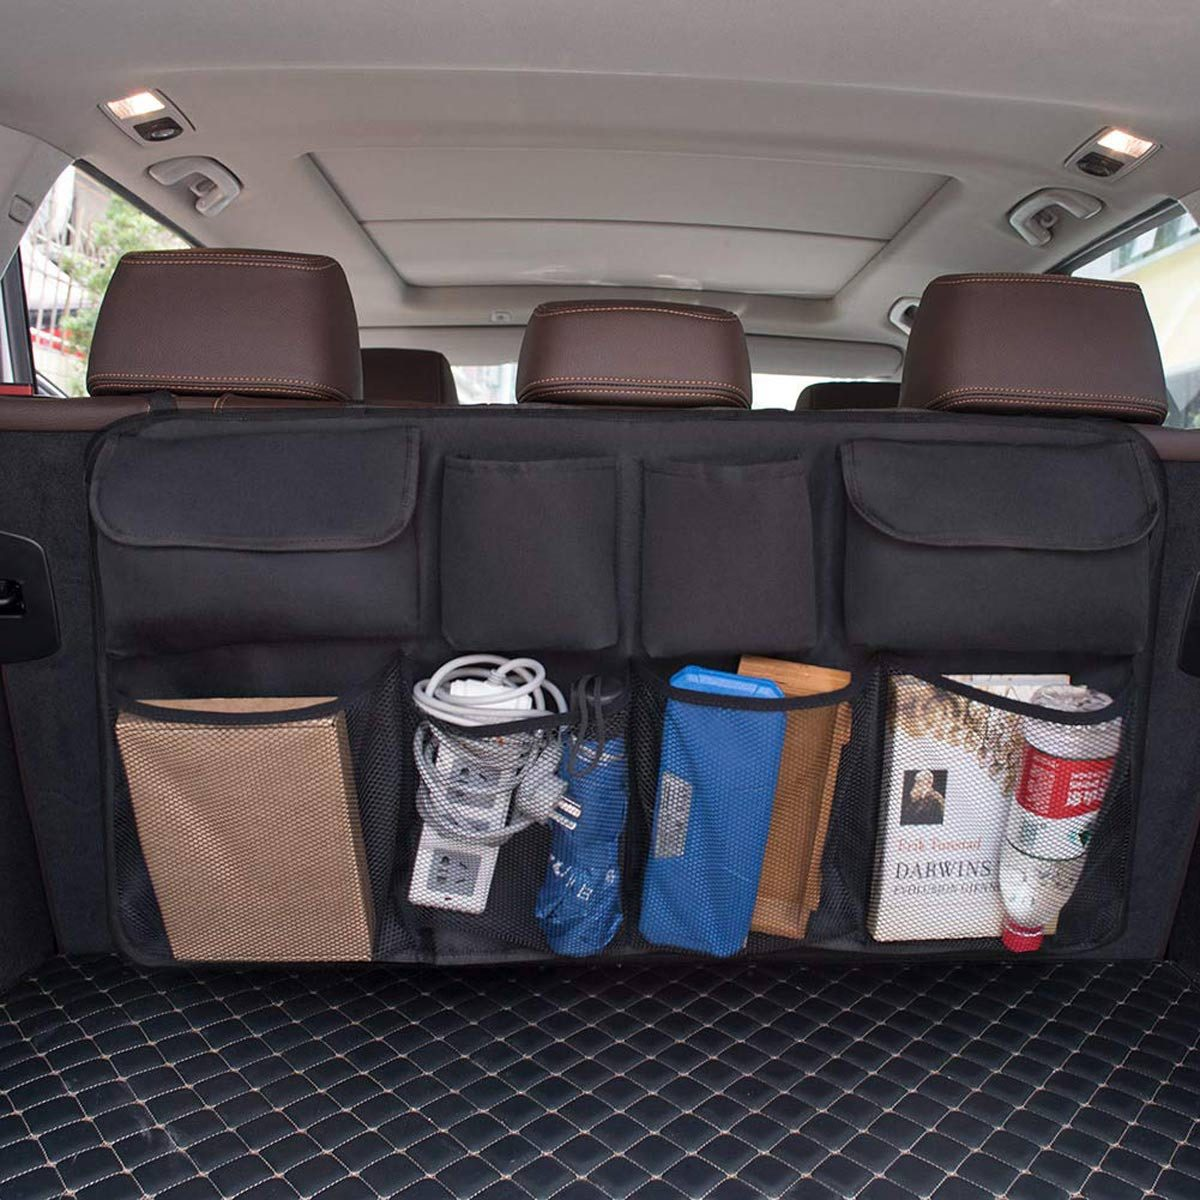 11 Car and Truck Organizers That Will Keep Your Ride Clean